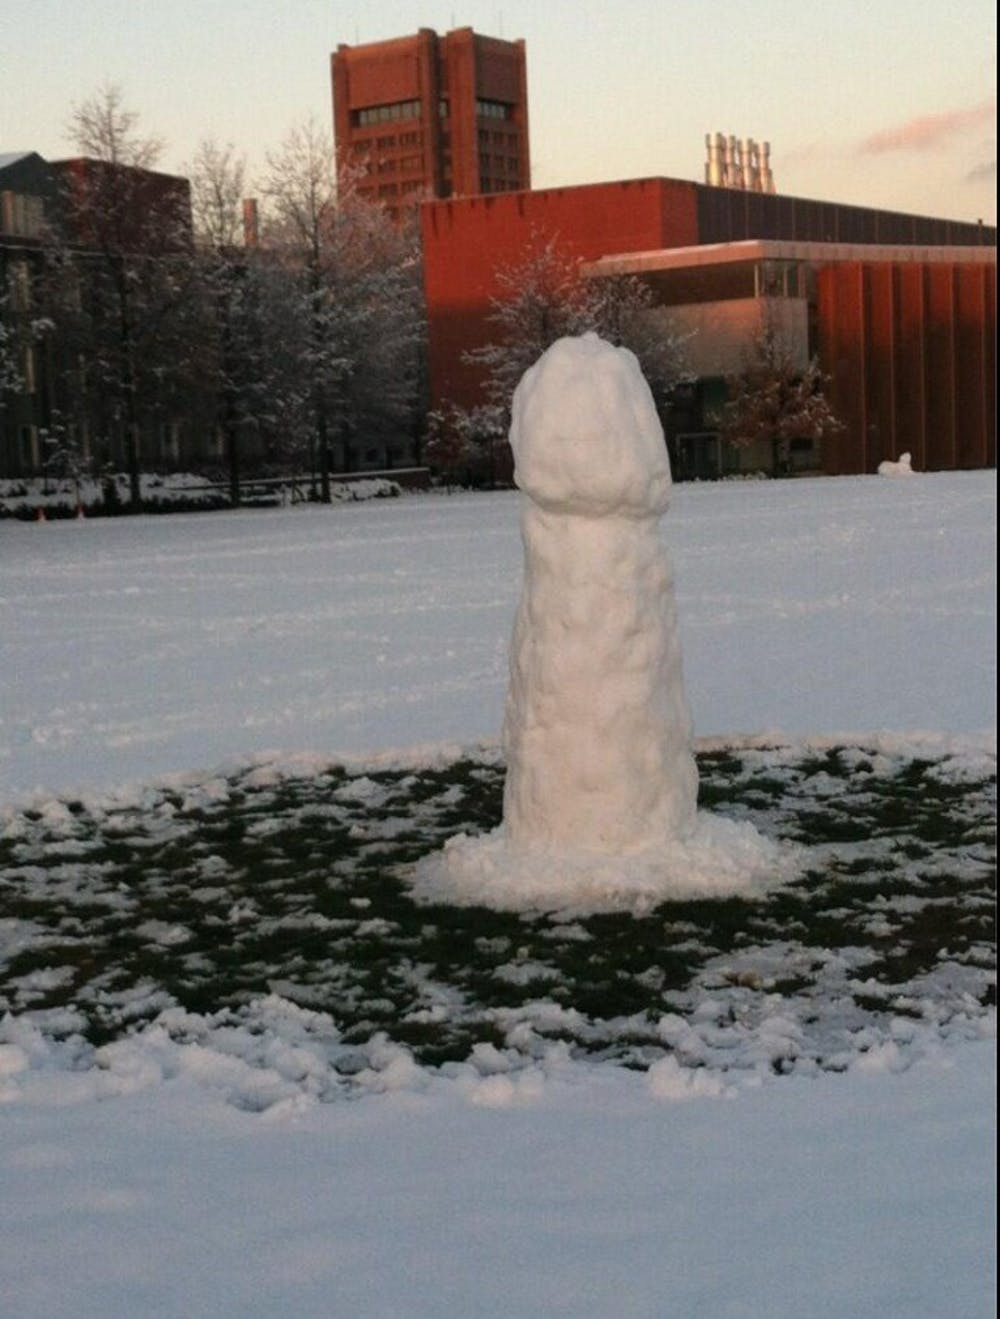 Snow penis erected on Princeton campus